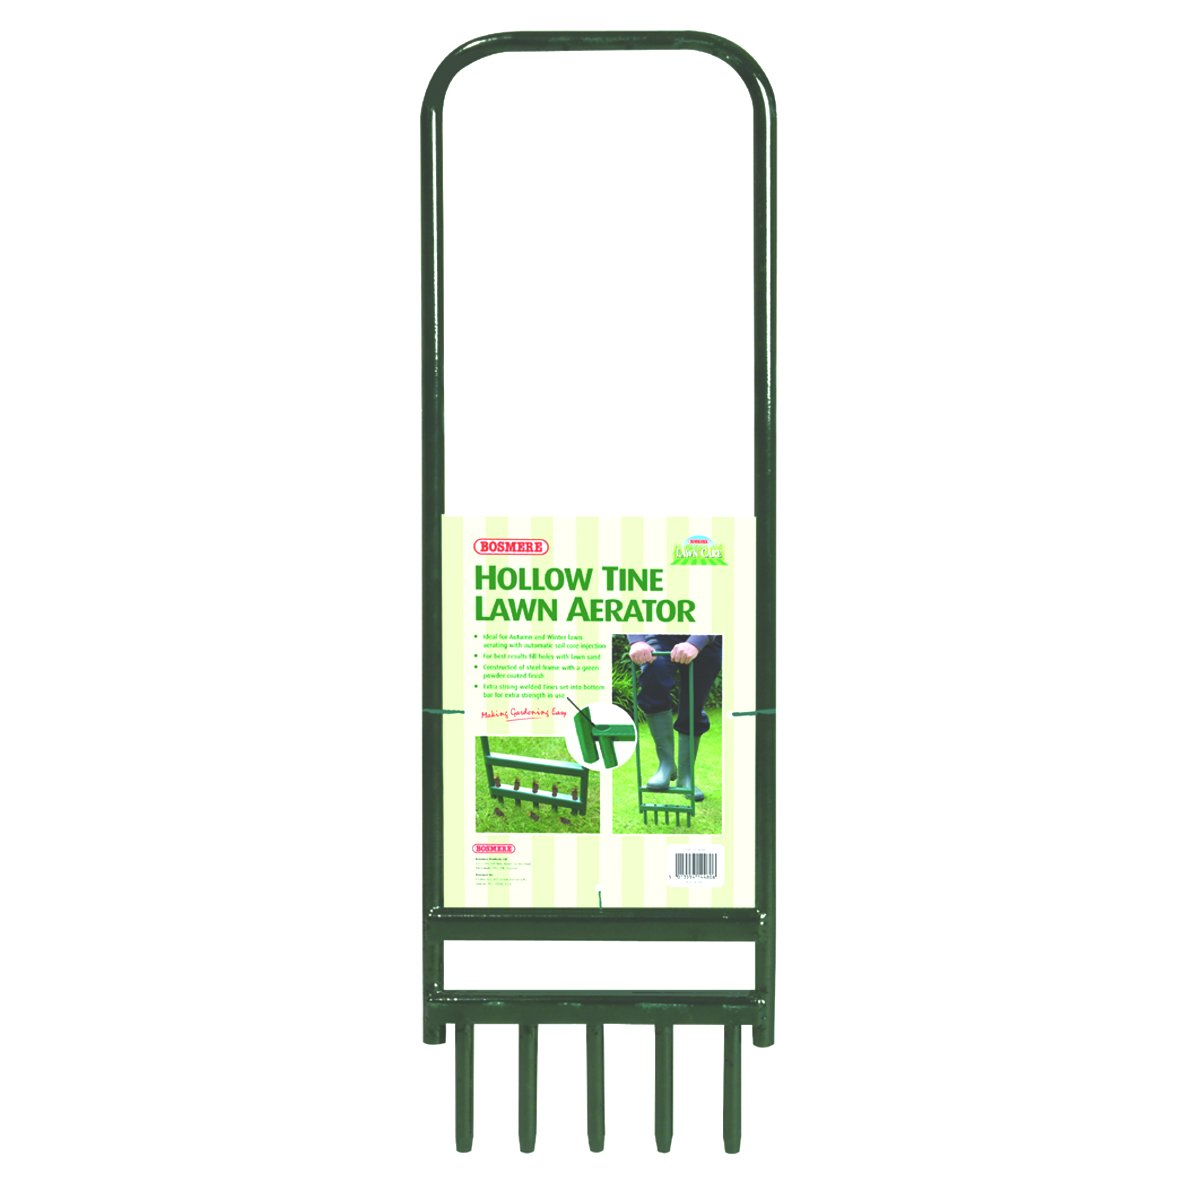 Bosmere Hollow Tine Lawn Aerator with 5 Tines, 35'' x 11''